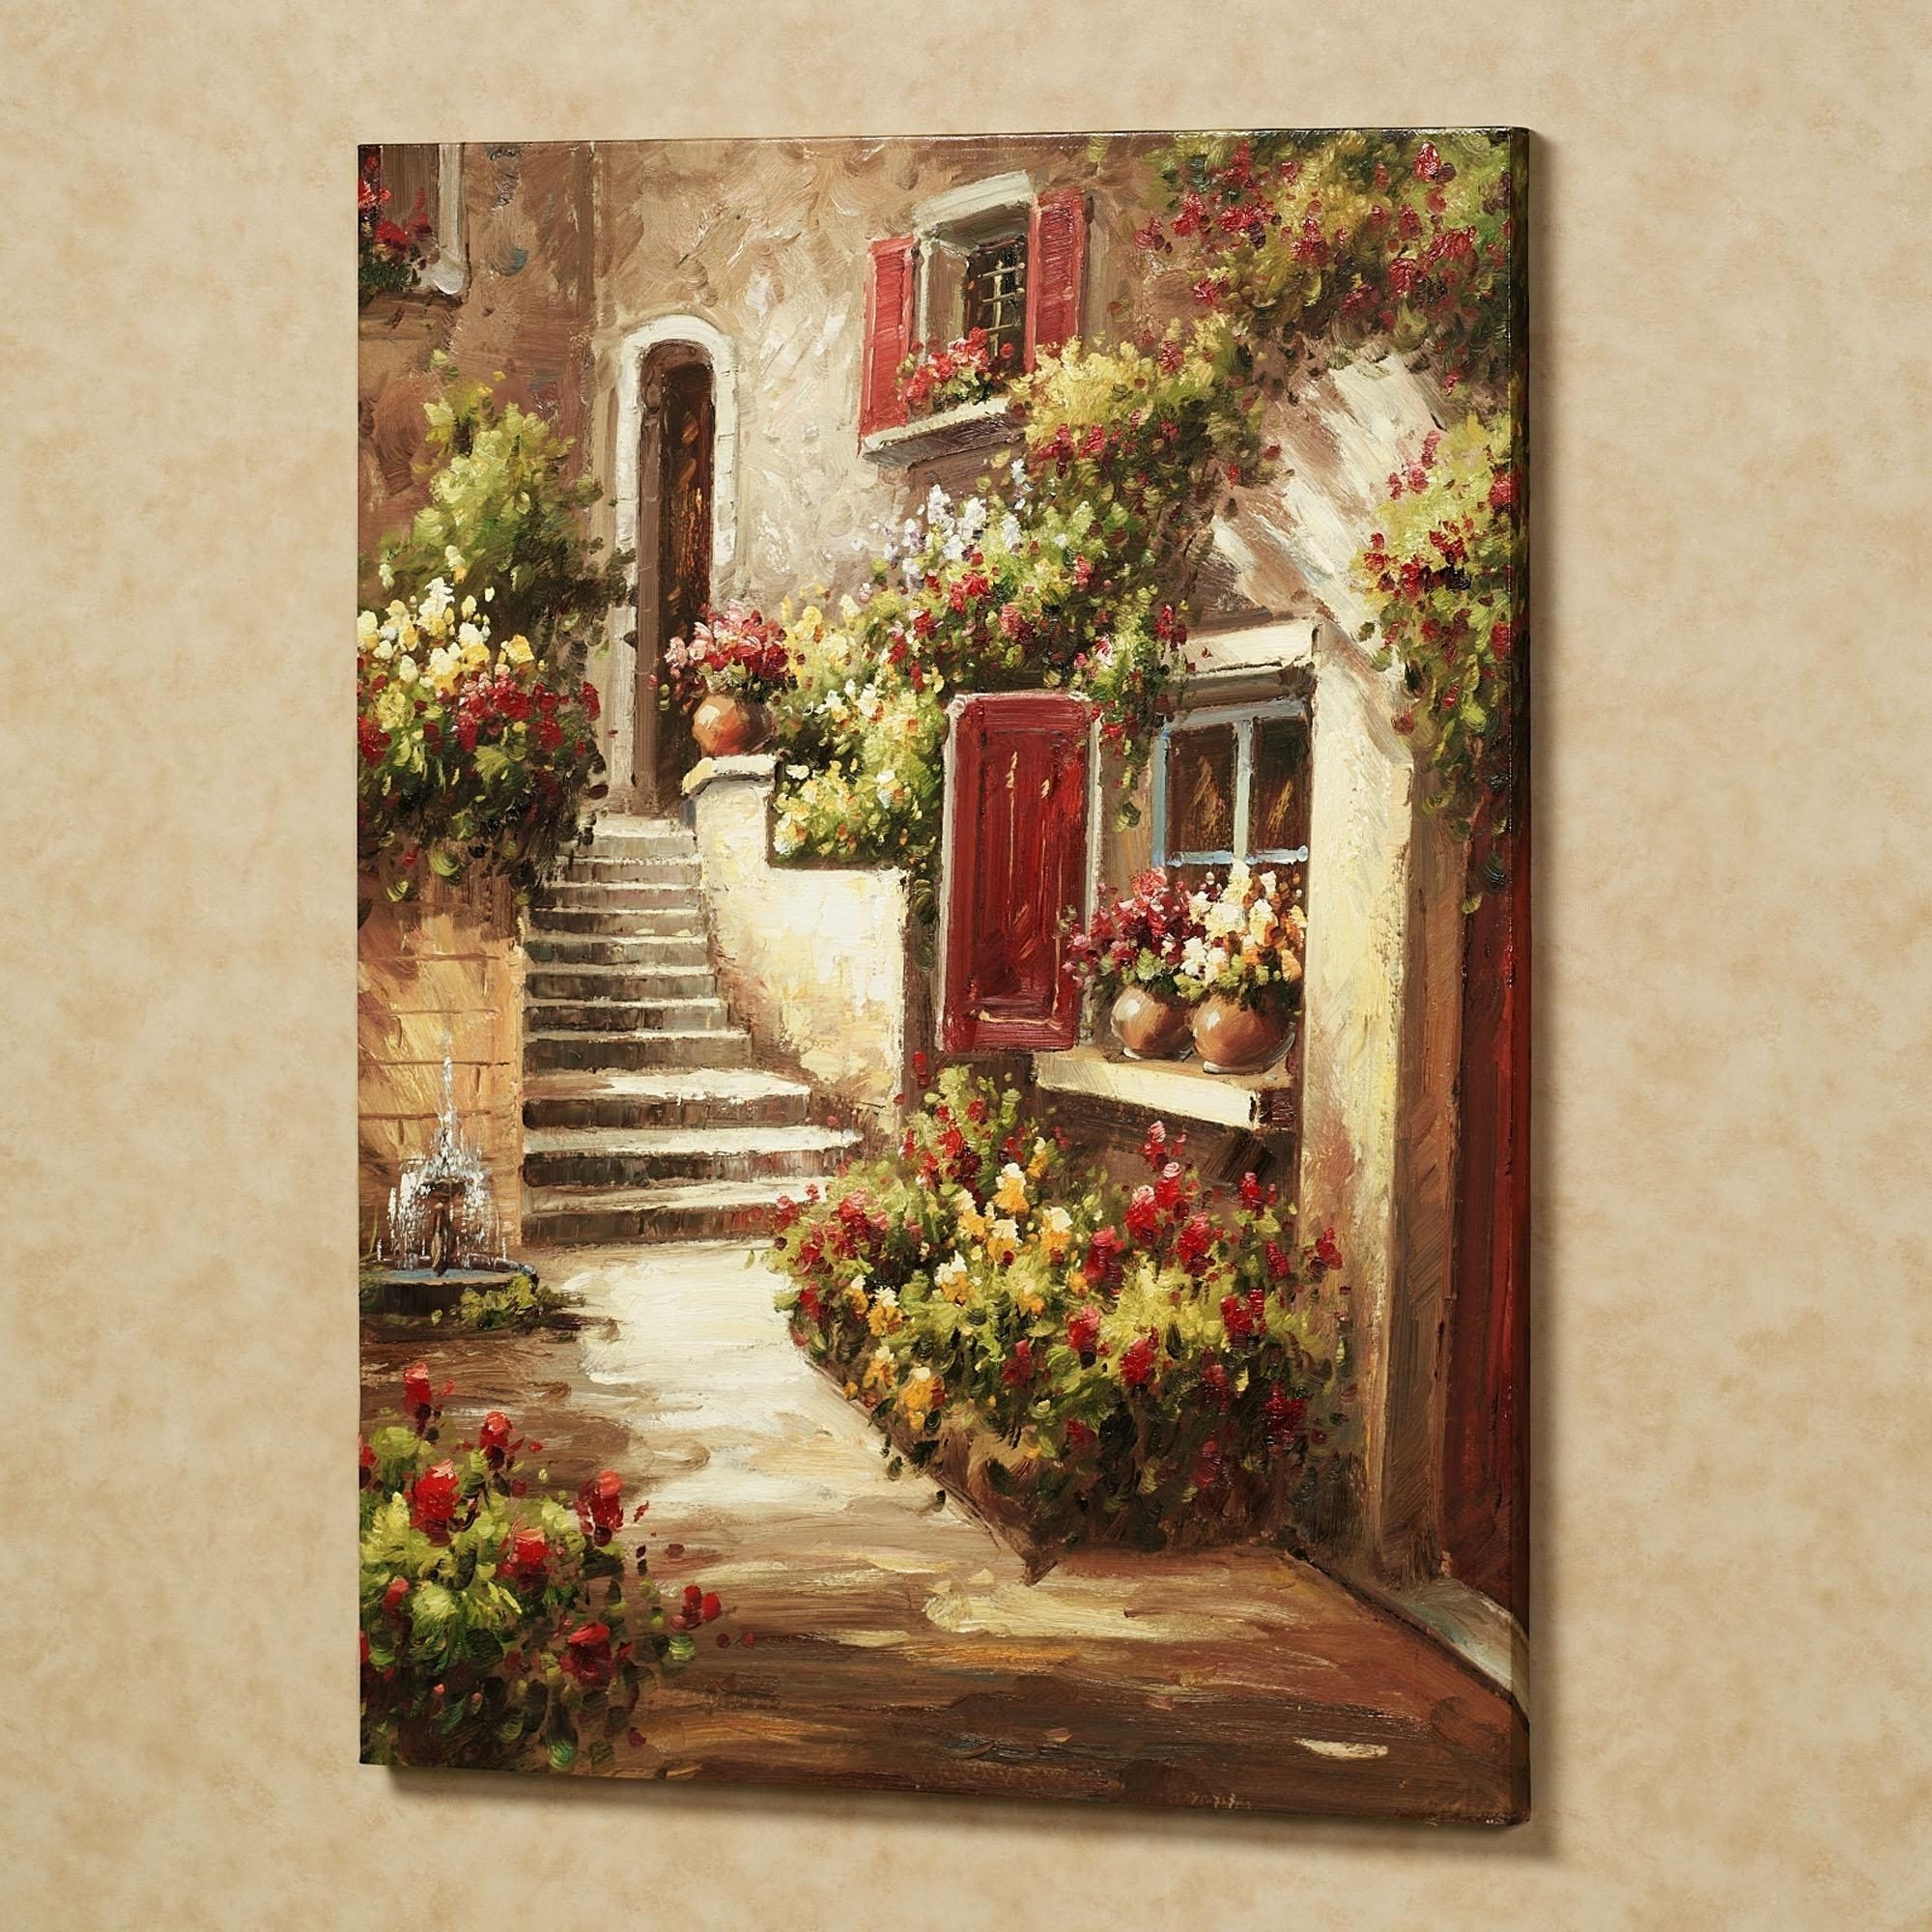 17 Traditional Wall Art Home Design Arts Decor Crecaranking Within Famous Traditional Wall Art (Gallery 5 of 15)